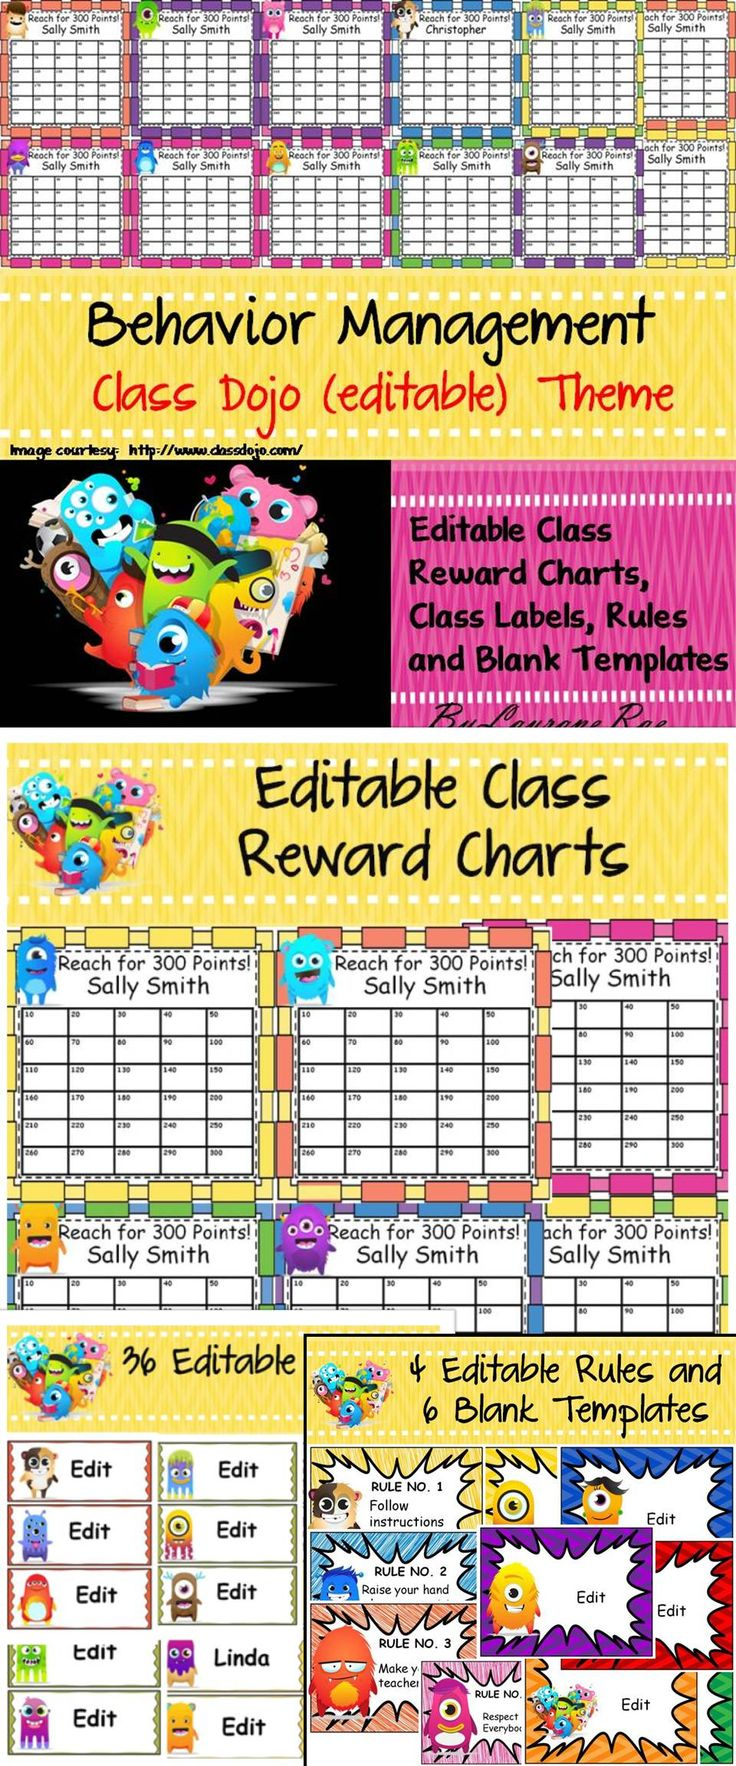 This resource comprises of 38 editable Reward Charts, 36 editable class labels, 10 editable single page templates that can be used with Class Dojo. If you are not familiar with Class Dojo, learn more about it here: http://www.classdojo.com/ https://www.yo